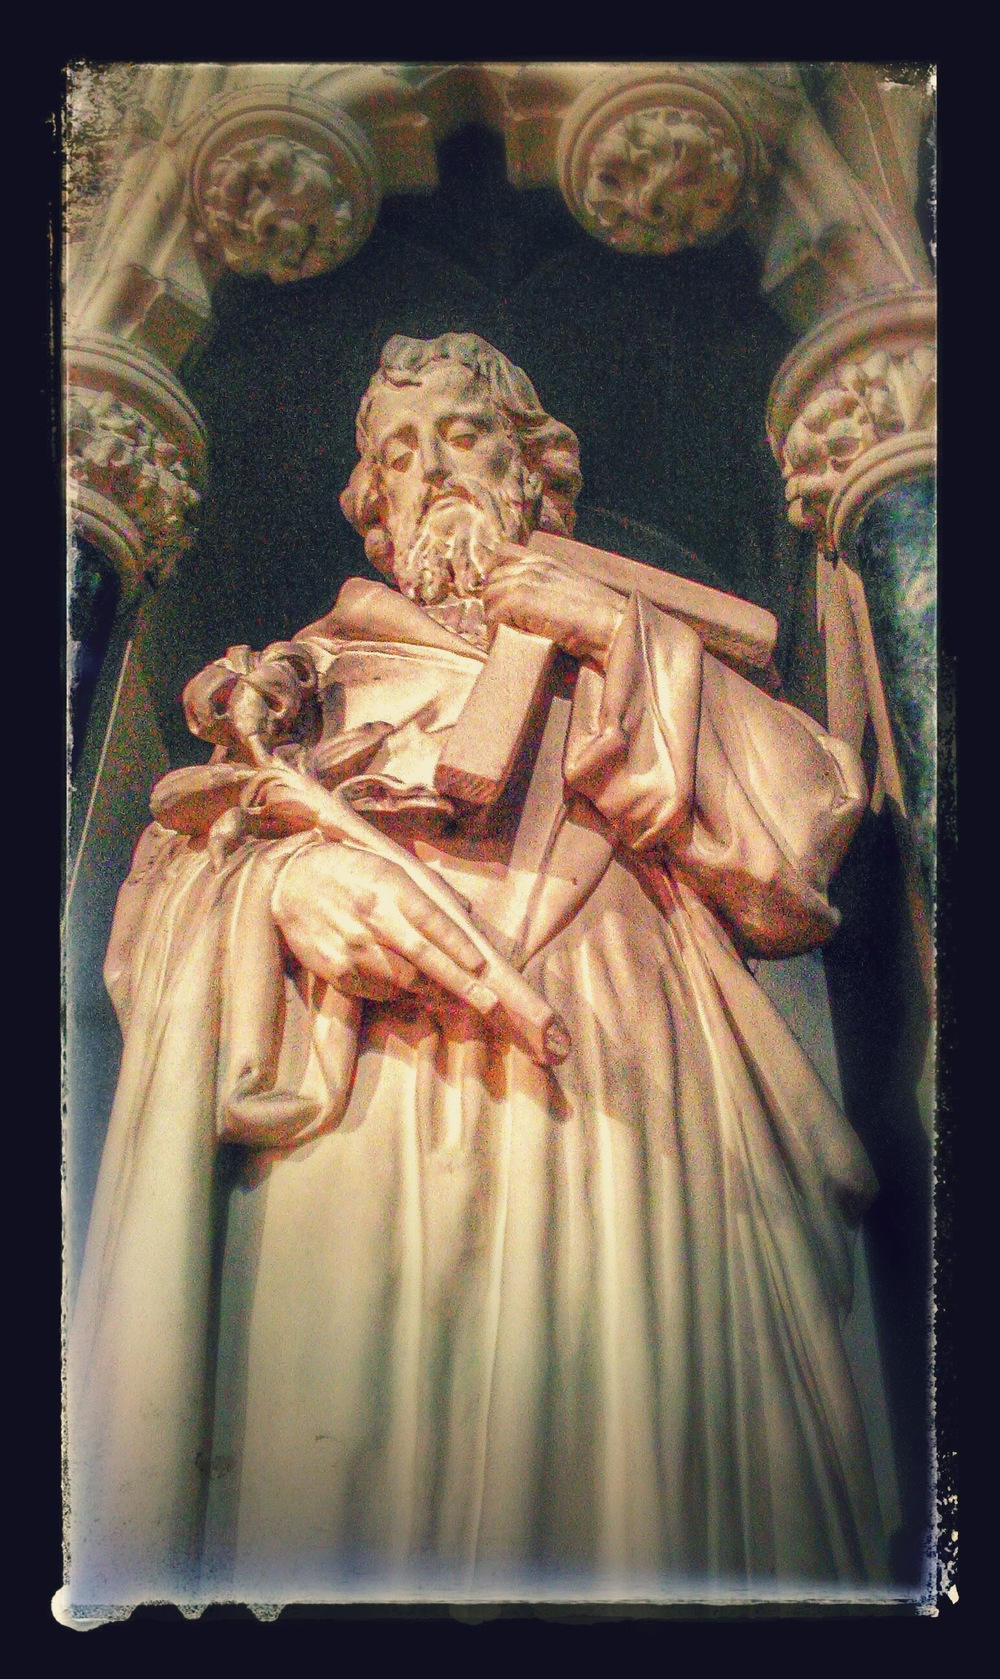 St Joseph, patron of the parish